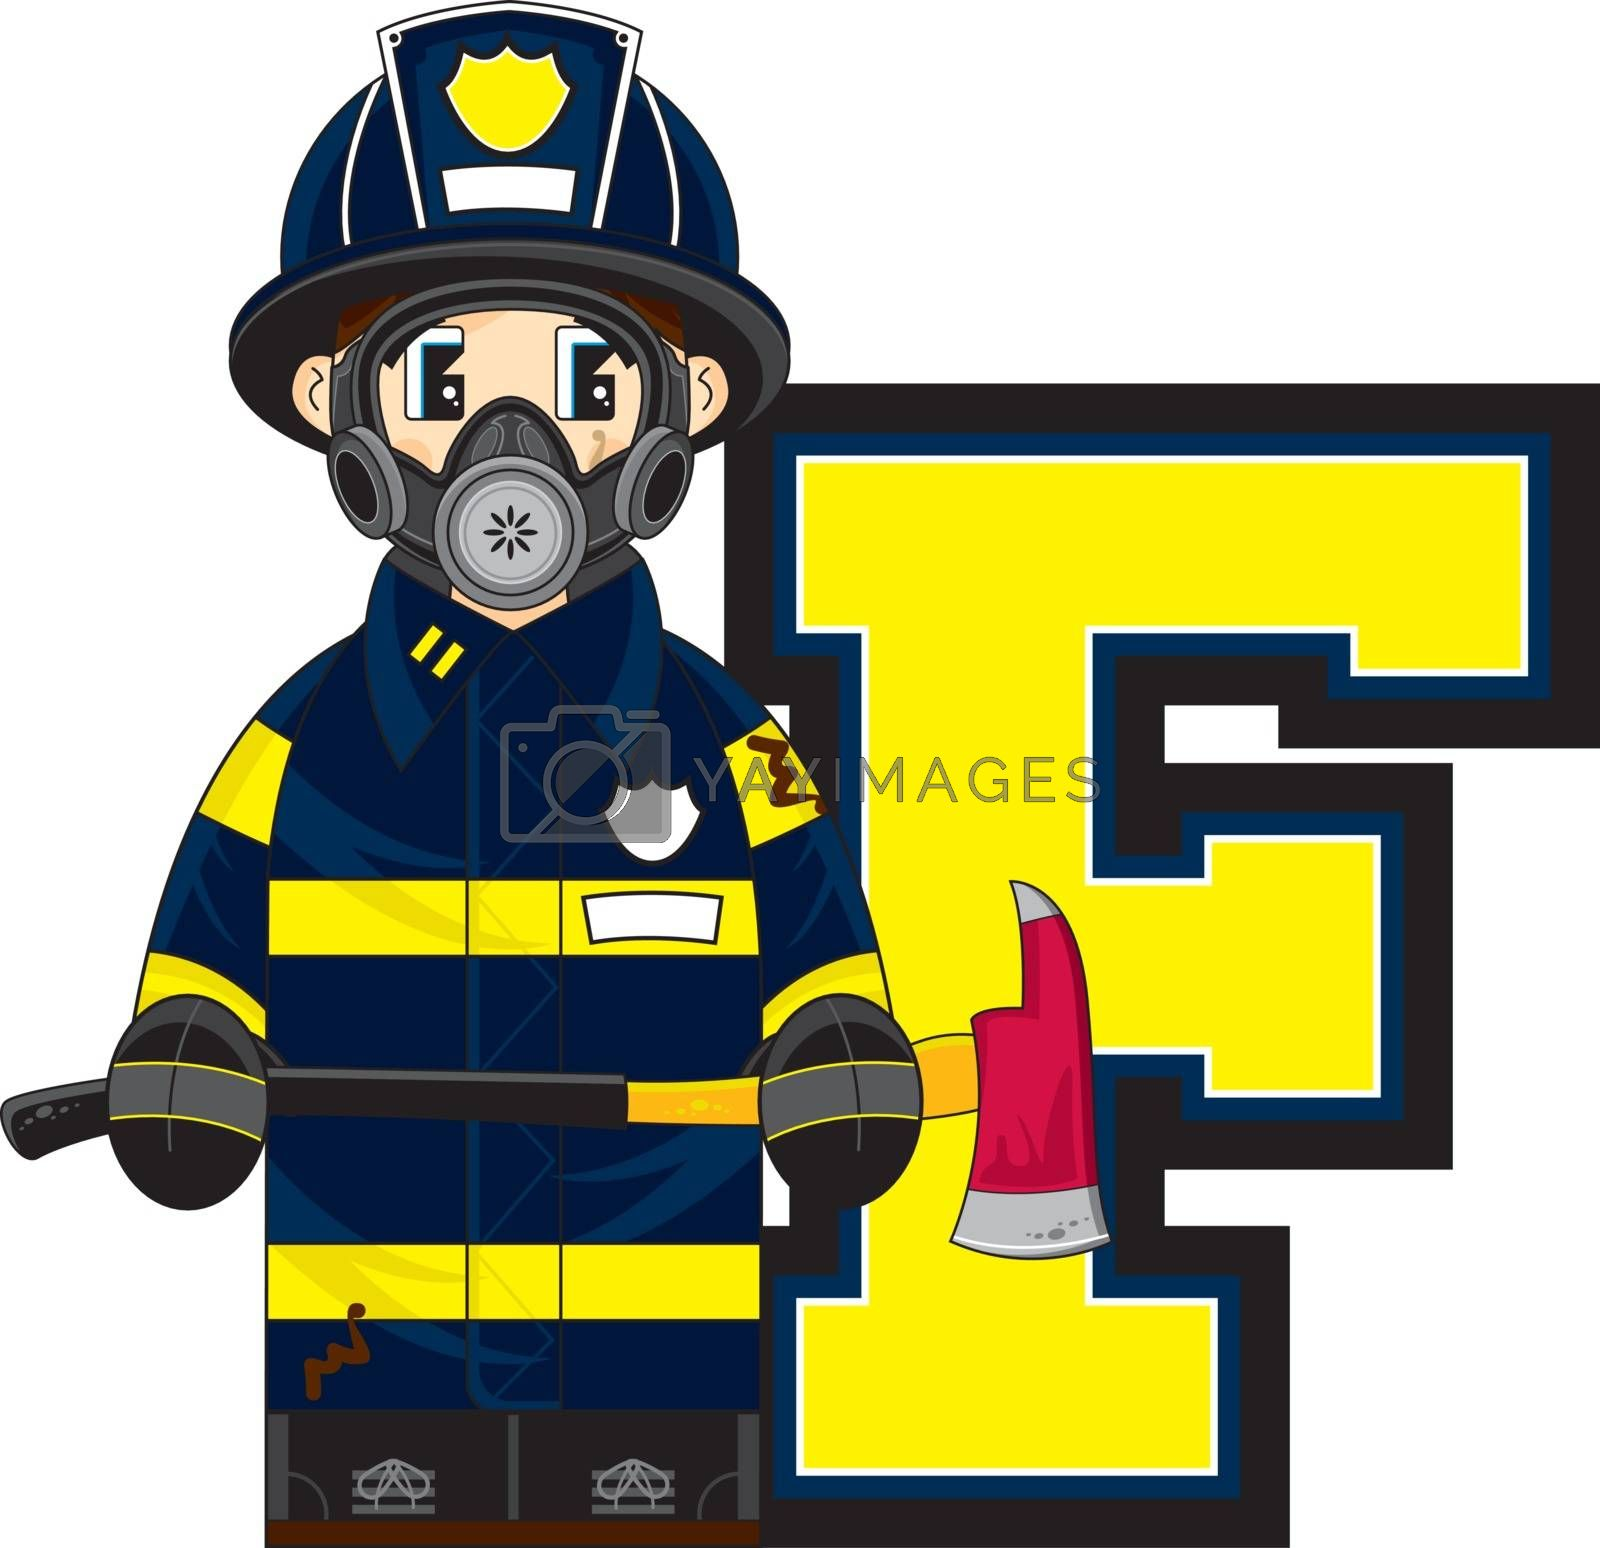 F is for Fireman Alphabet Learning Vector Illustration by Mark Murphy Creative